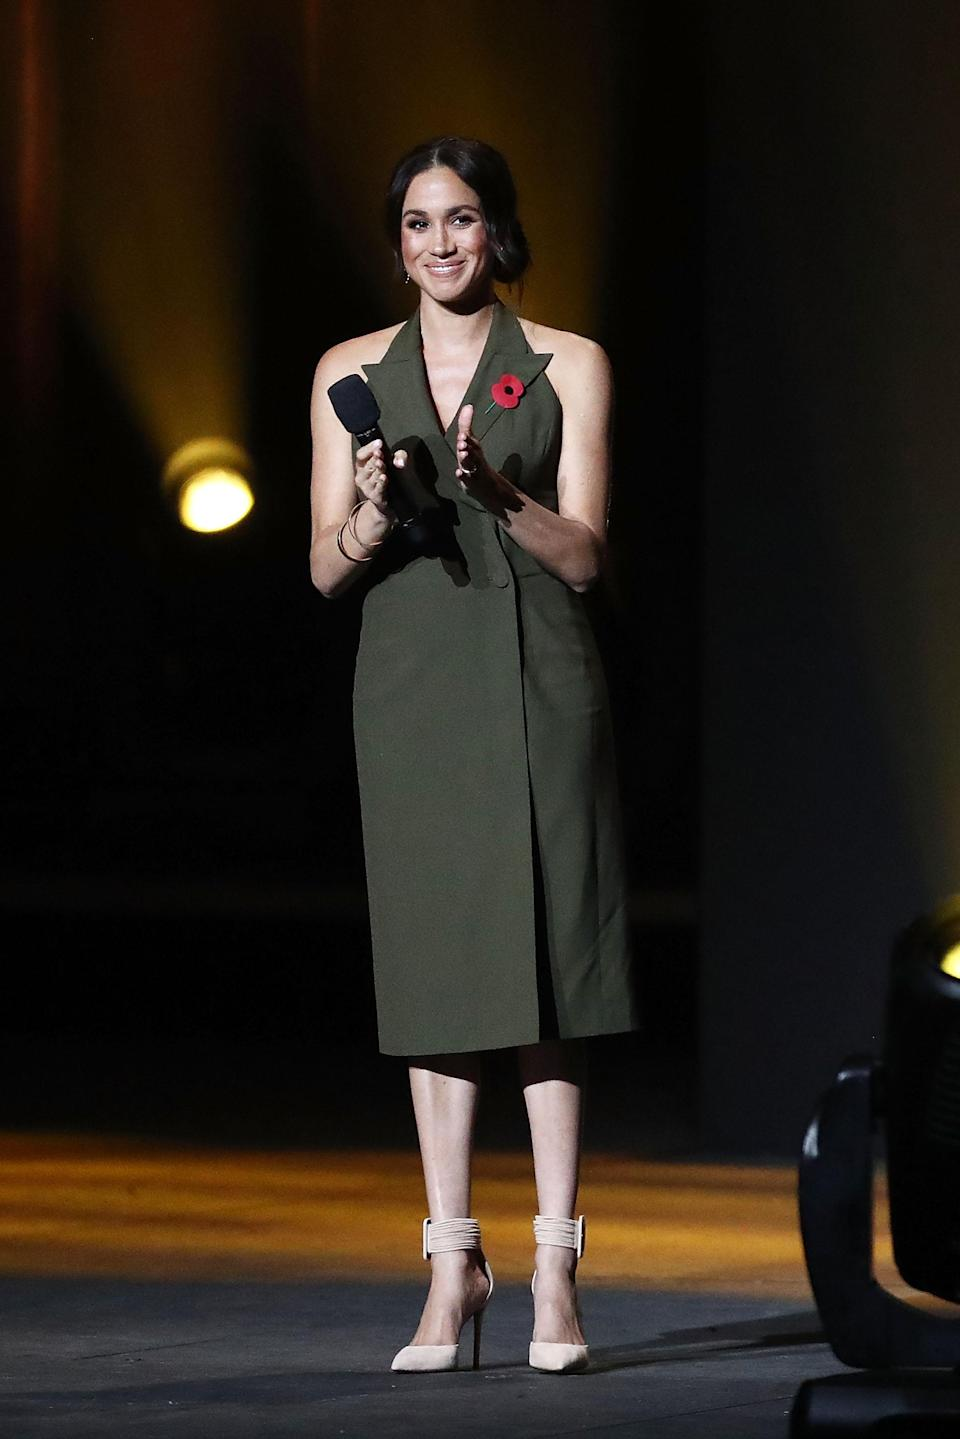 <p>On October 27, Meghan delivered a speech at the 2018 Invictus Games closing ceremony in a green Antonio Berardi tuxedo dress. <em>[Photo: Getty]</em> </p>